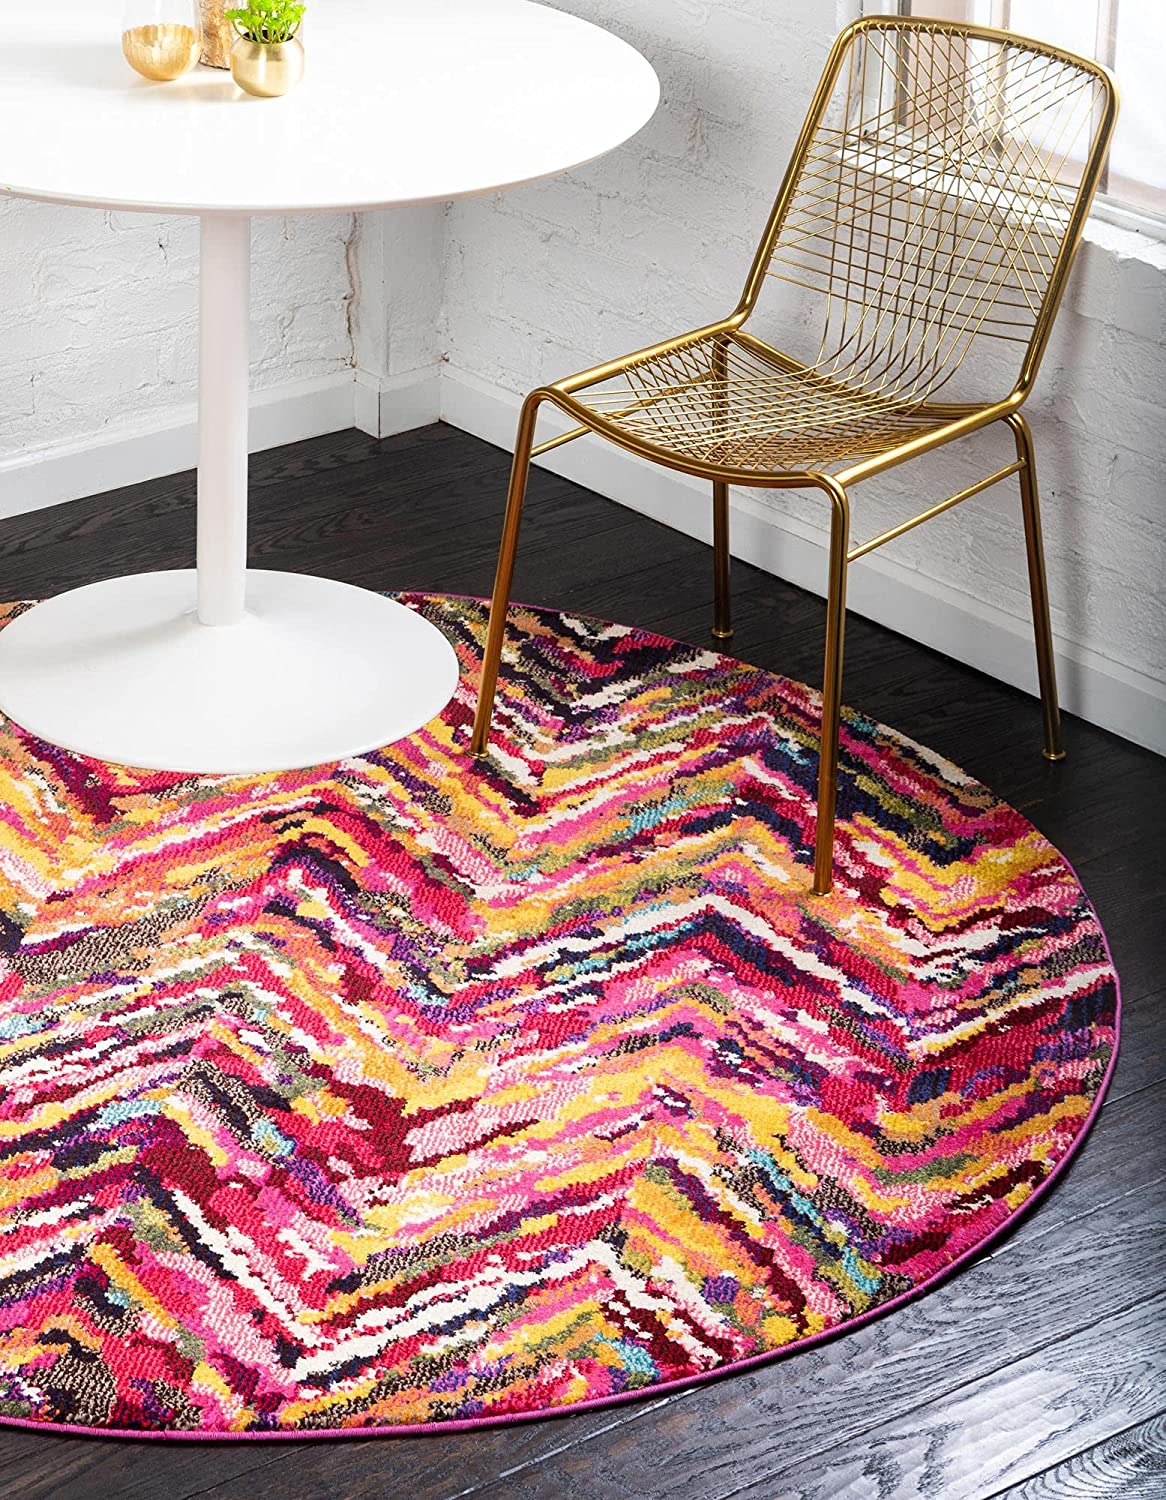 Unique Loom Estrella Collection Colorful Rug Round F 6 Finally resale start Max 46% OFF Abstract